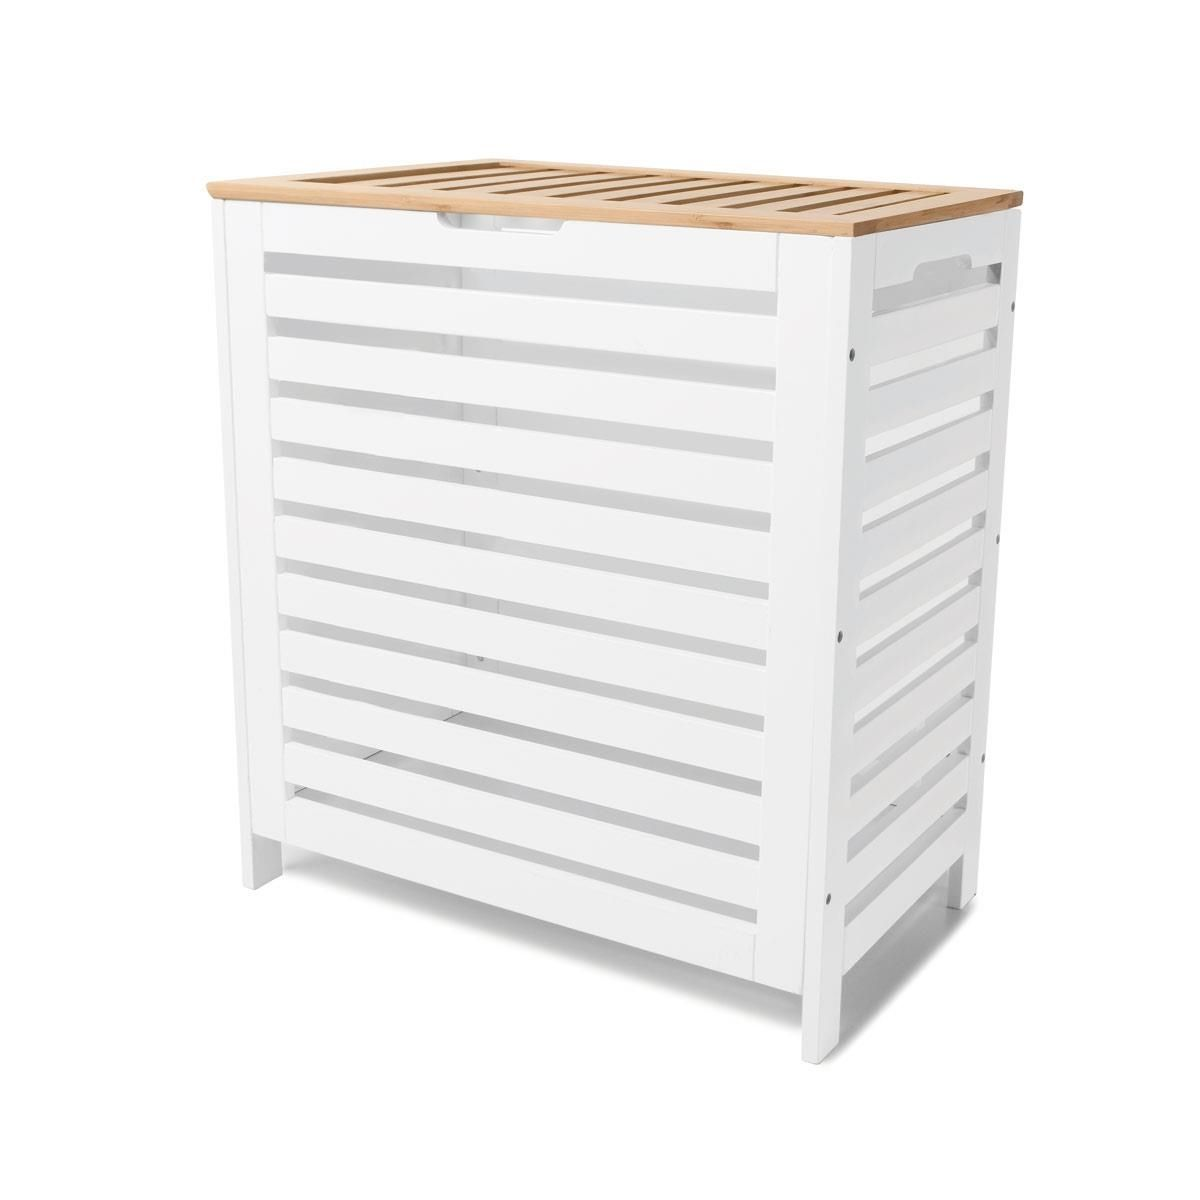 storage box with bamboo lid shelf kmart